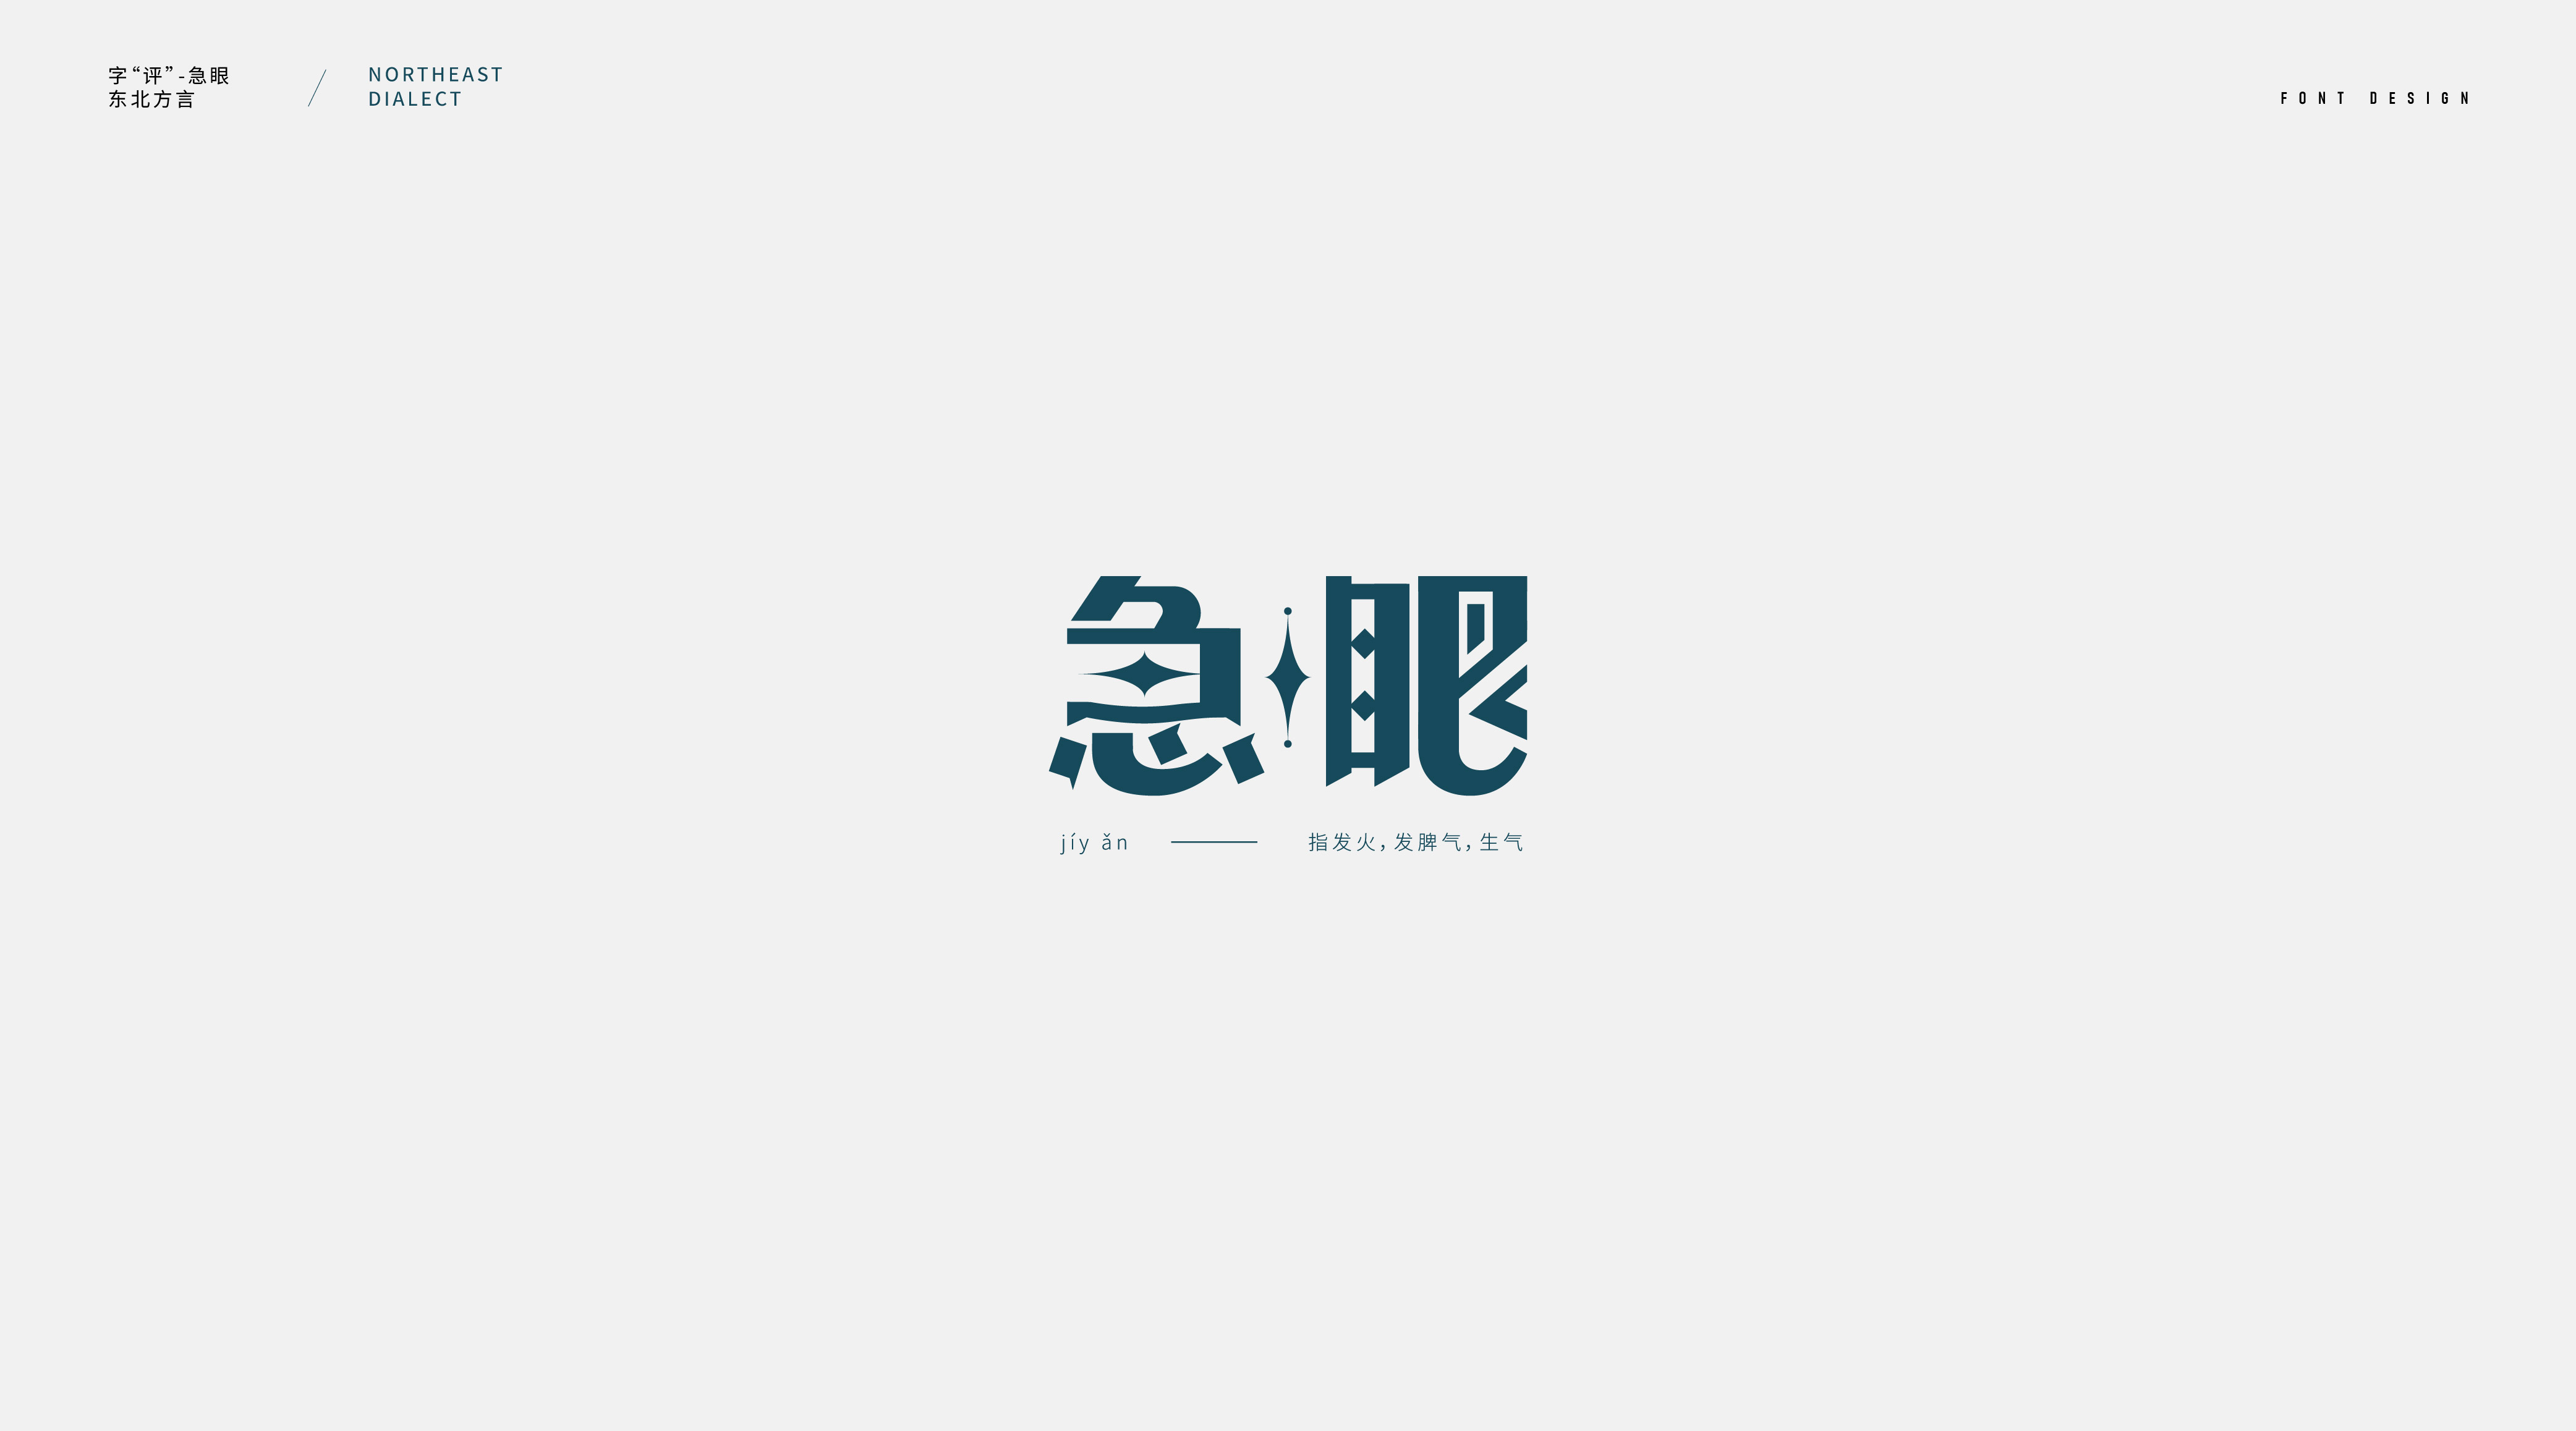 Interesting Chinese Creative Font Design-Word Review-Northeast Dialect